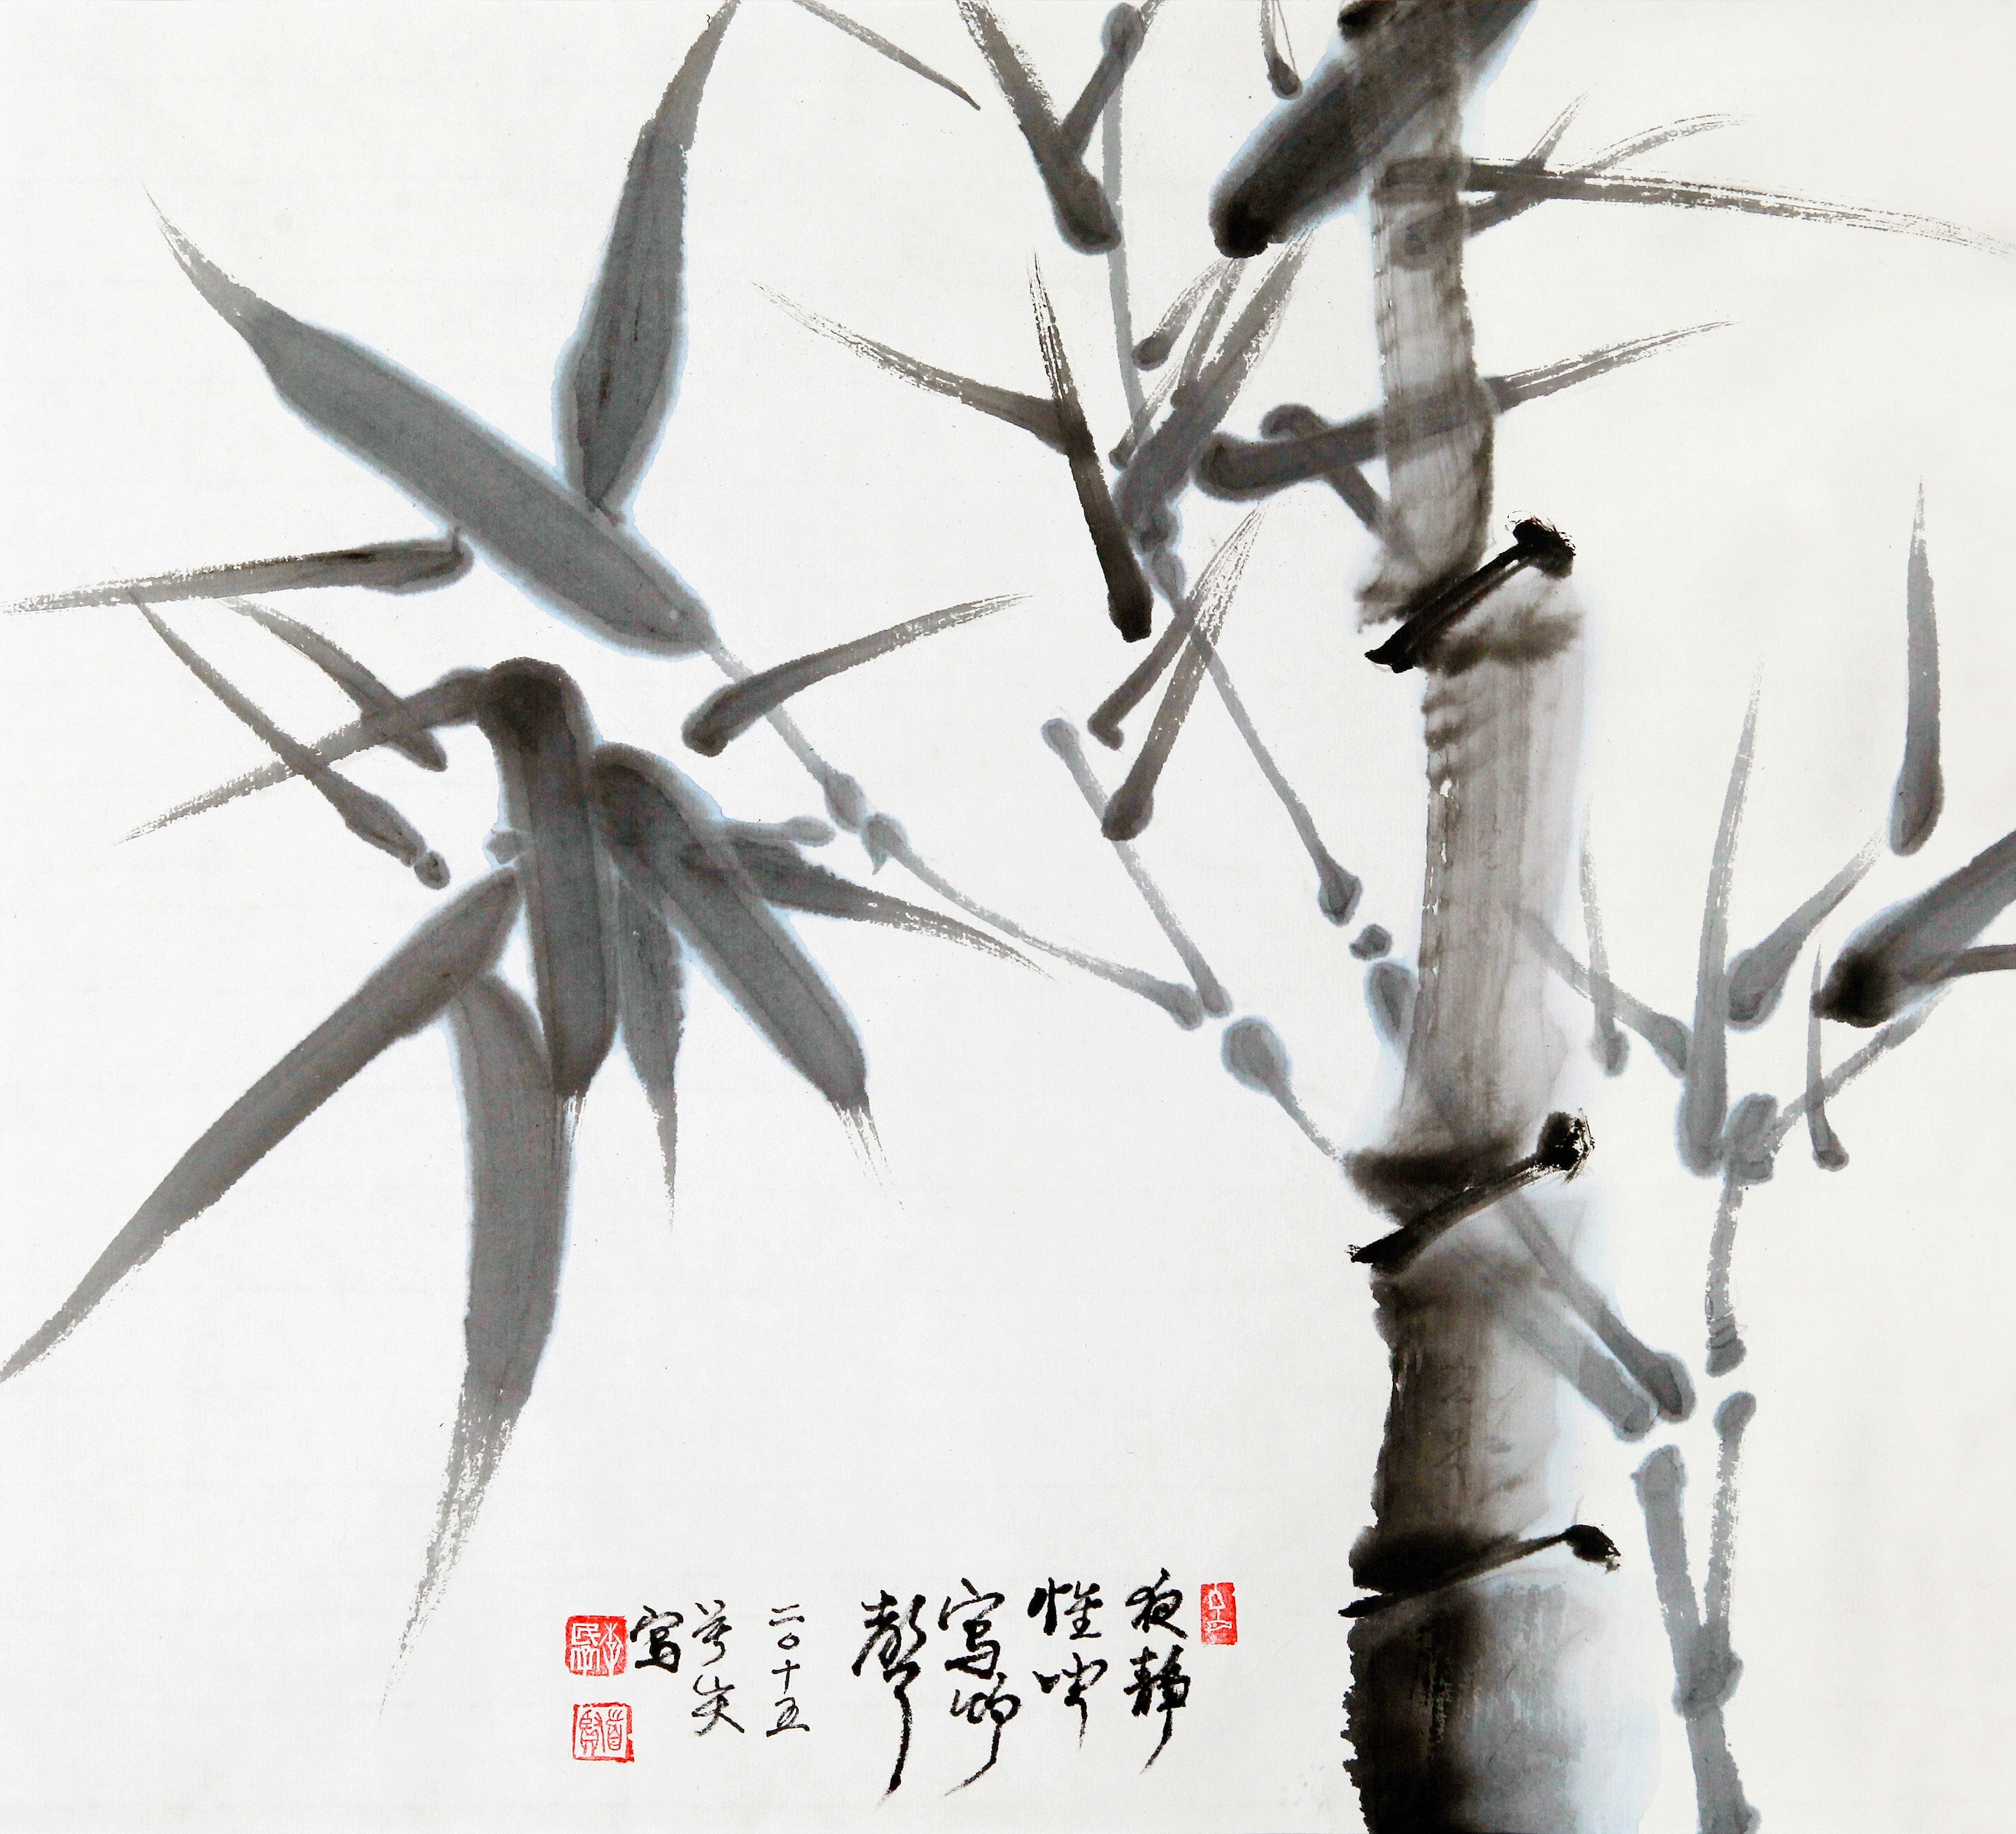 Korean Calligraphy And Ink Painting Office Of News And